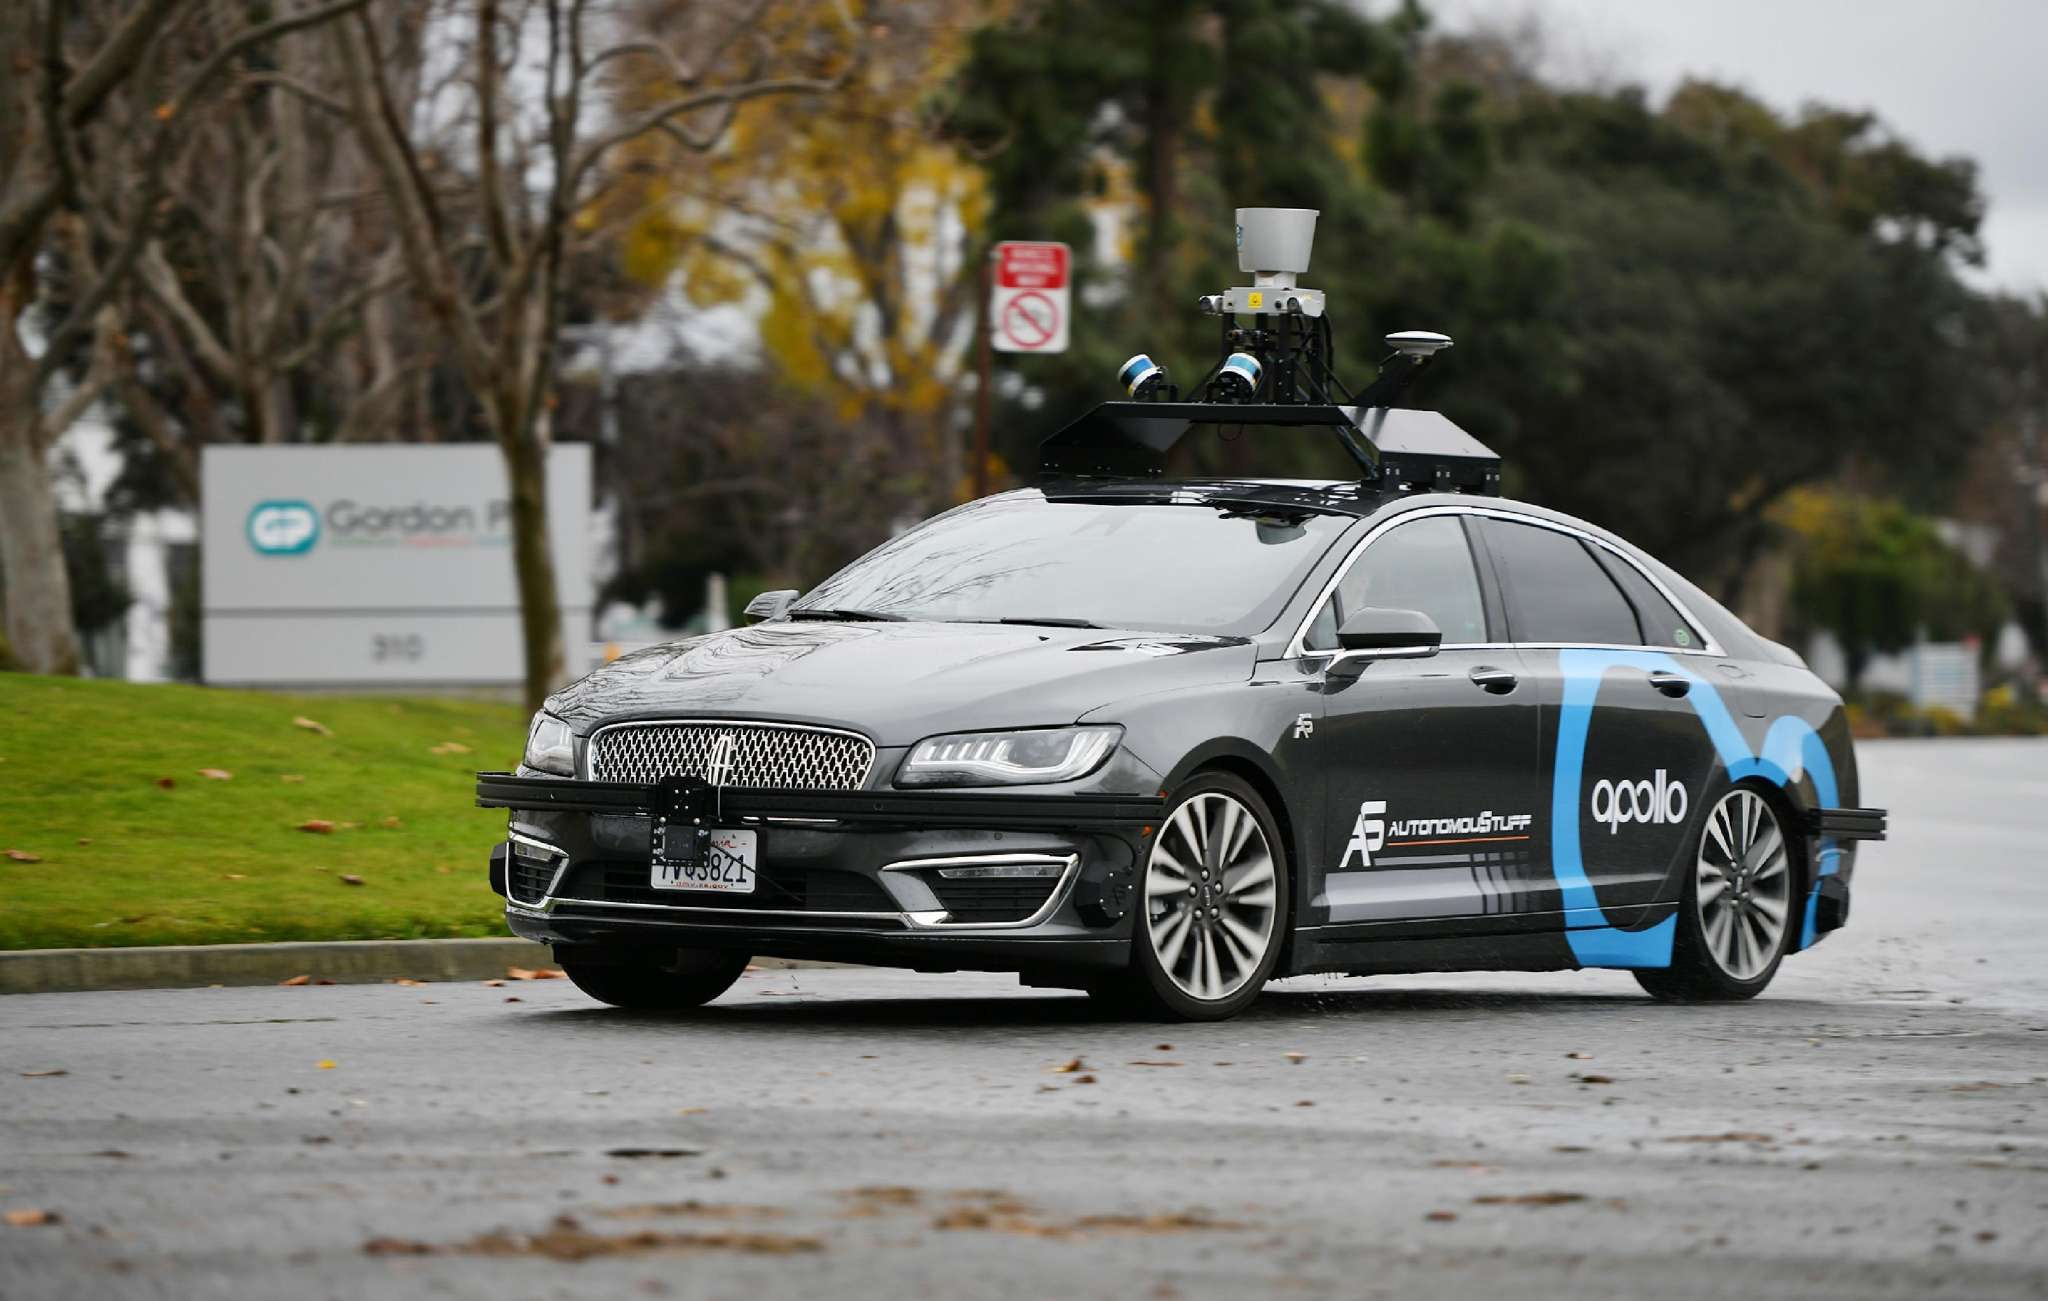 Baidu completes road test of driverless auto  in Silicon Valley